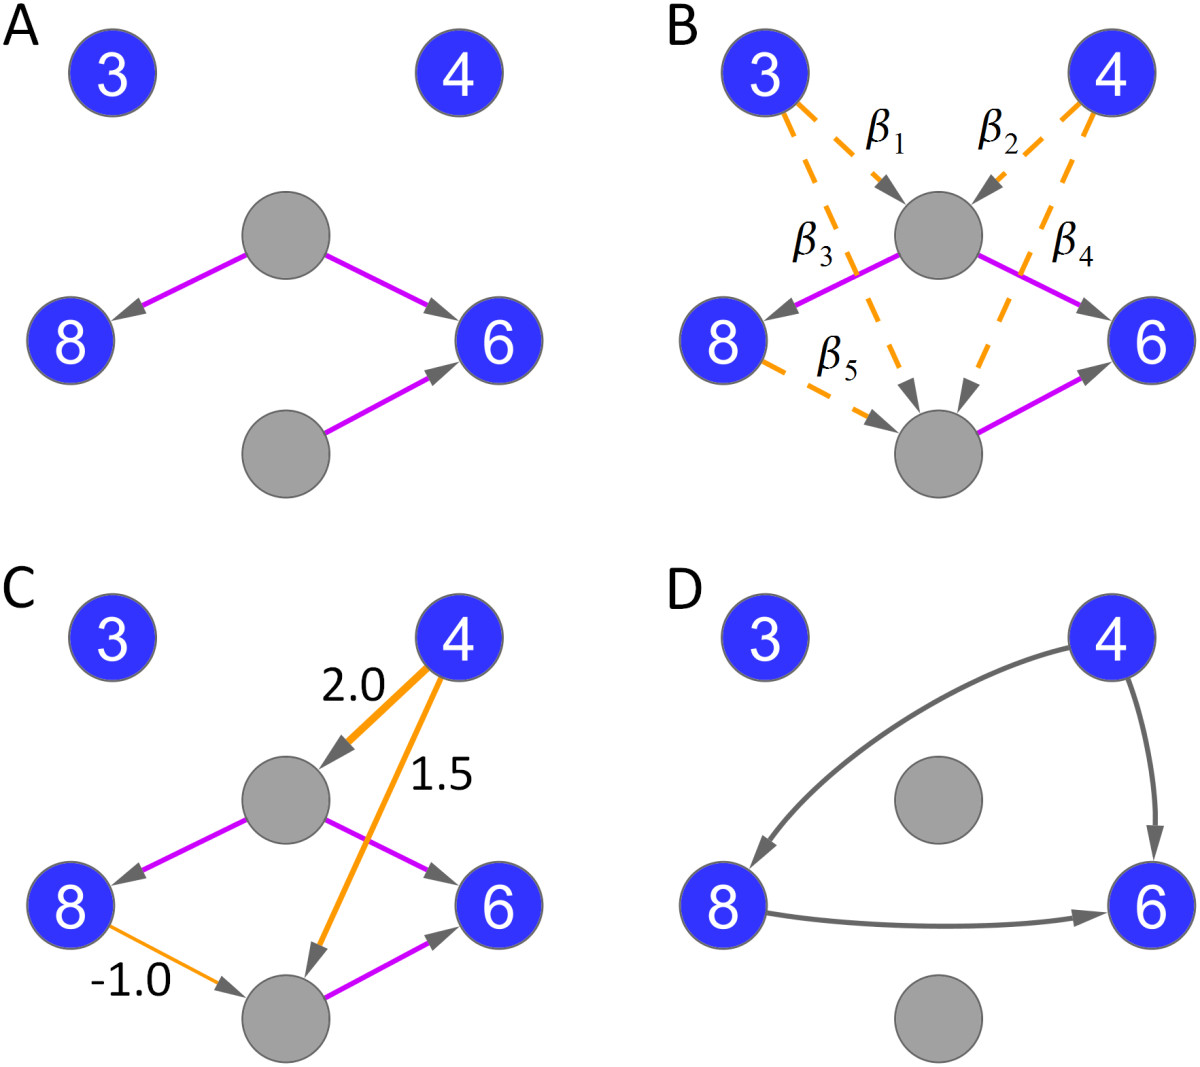 https://static-content.springer.com/image/art%3A10.1186%2F1471-2105-10-262/MediaObjects/12859_2009_Article_2992_Fig2_HTML.jpg